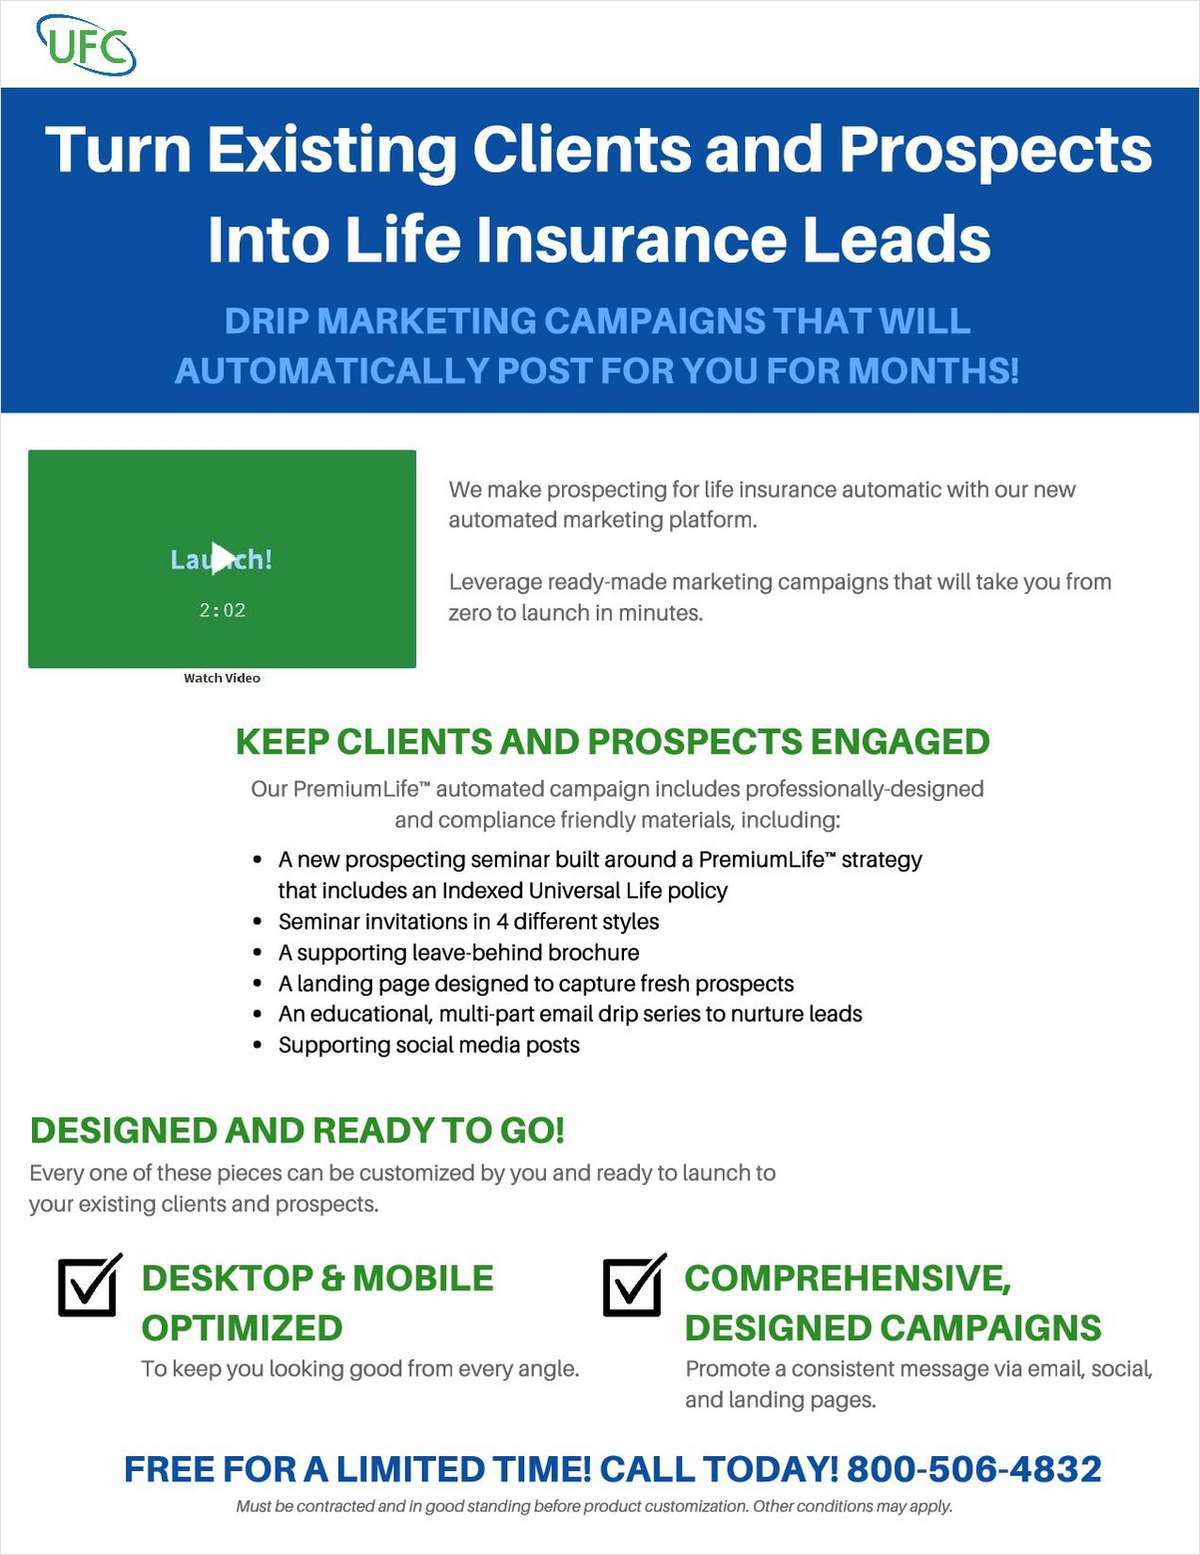 Turn Existing Clients and Prospects Into Life Insurance Leads